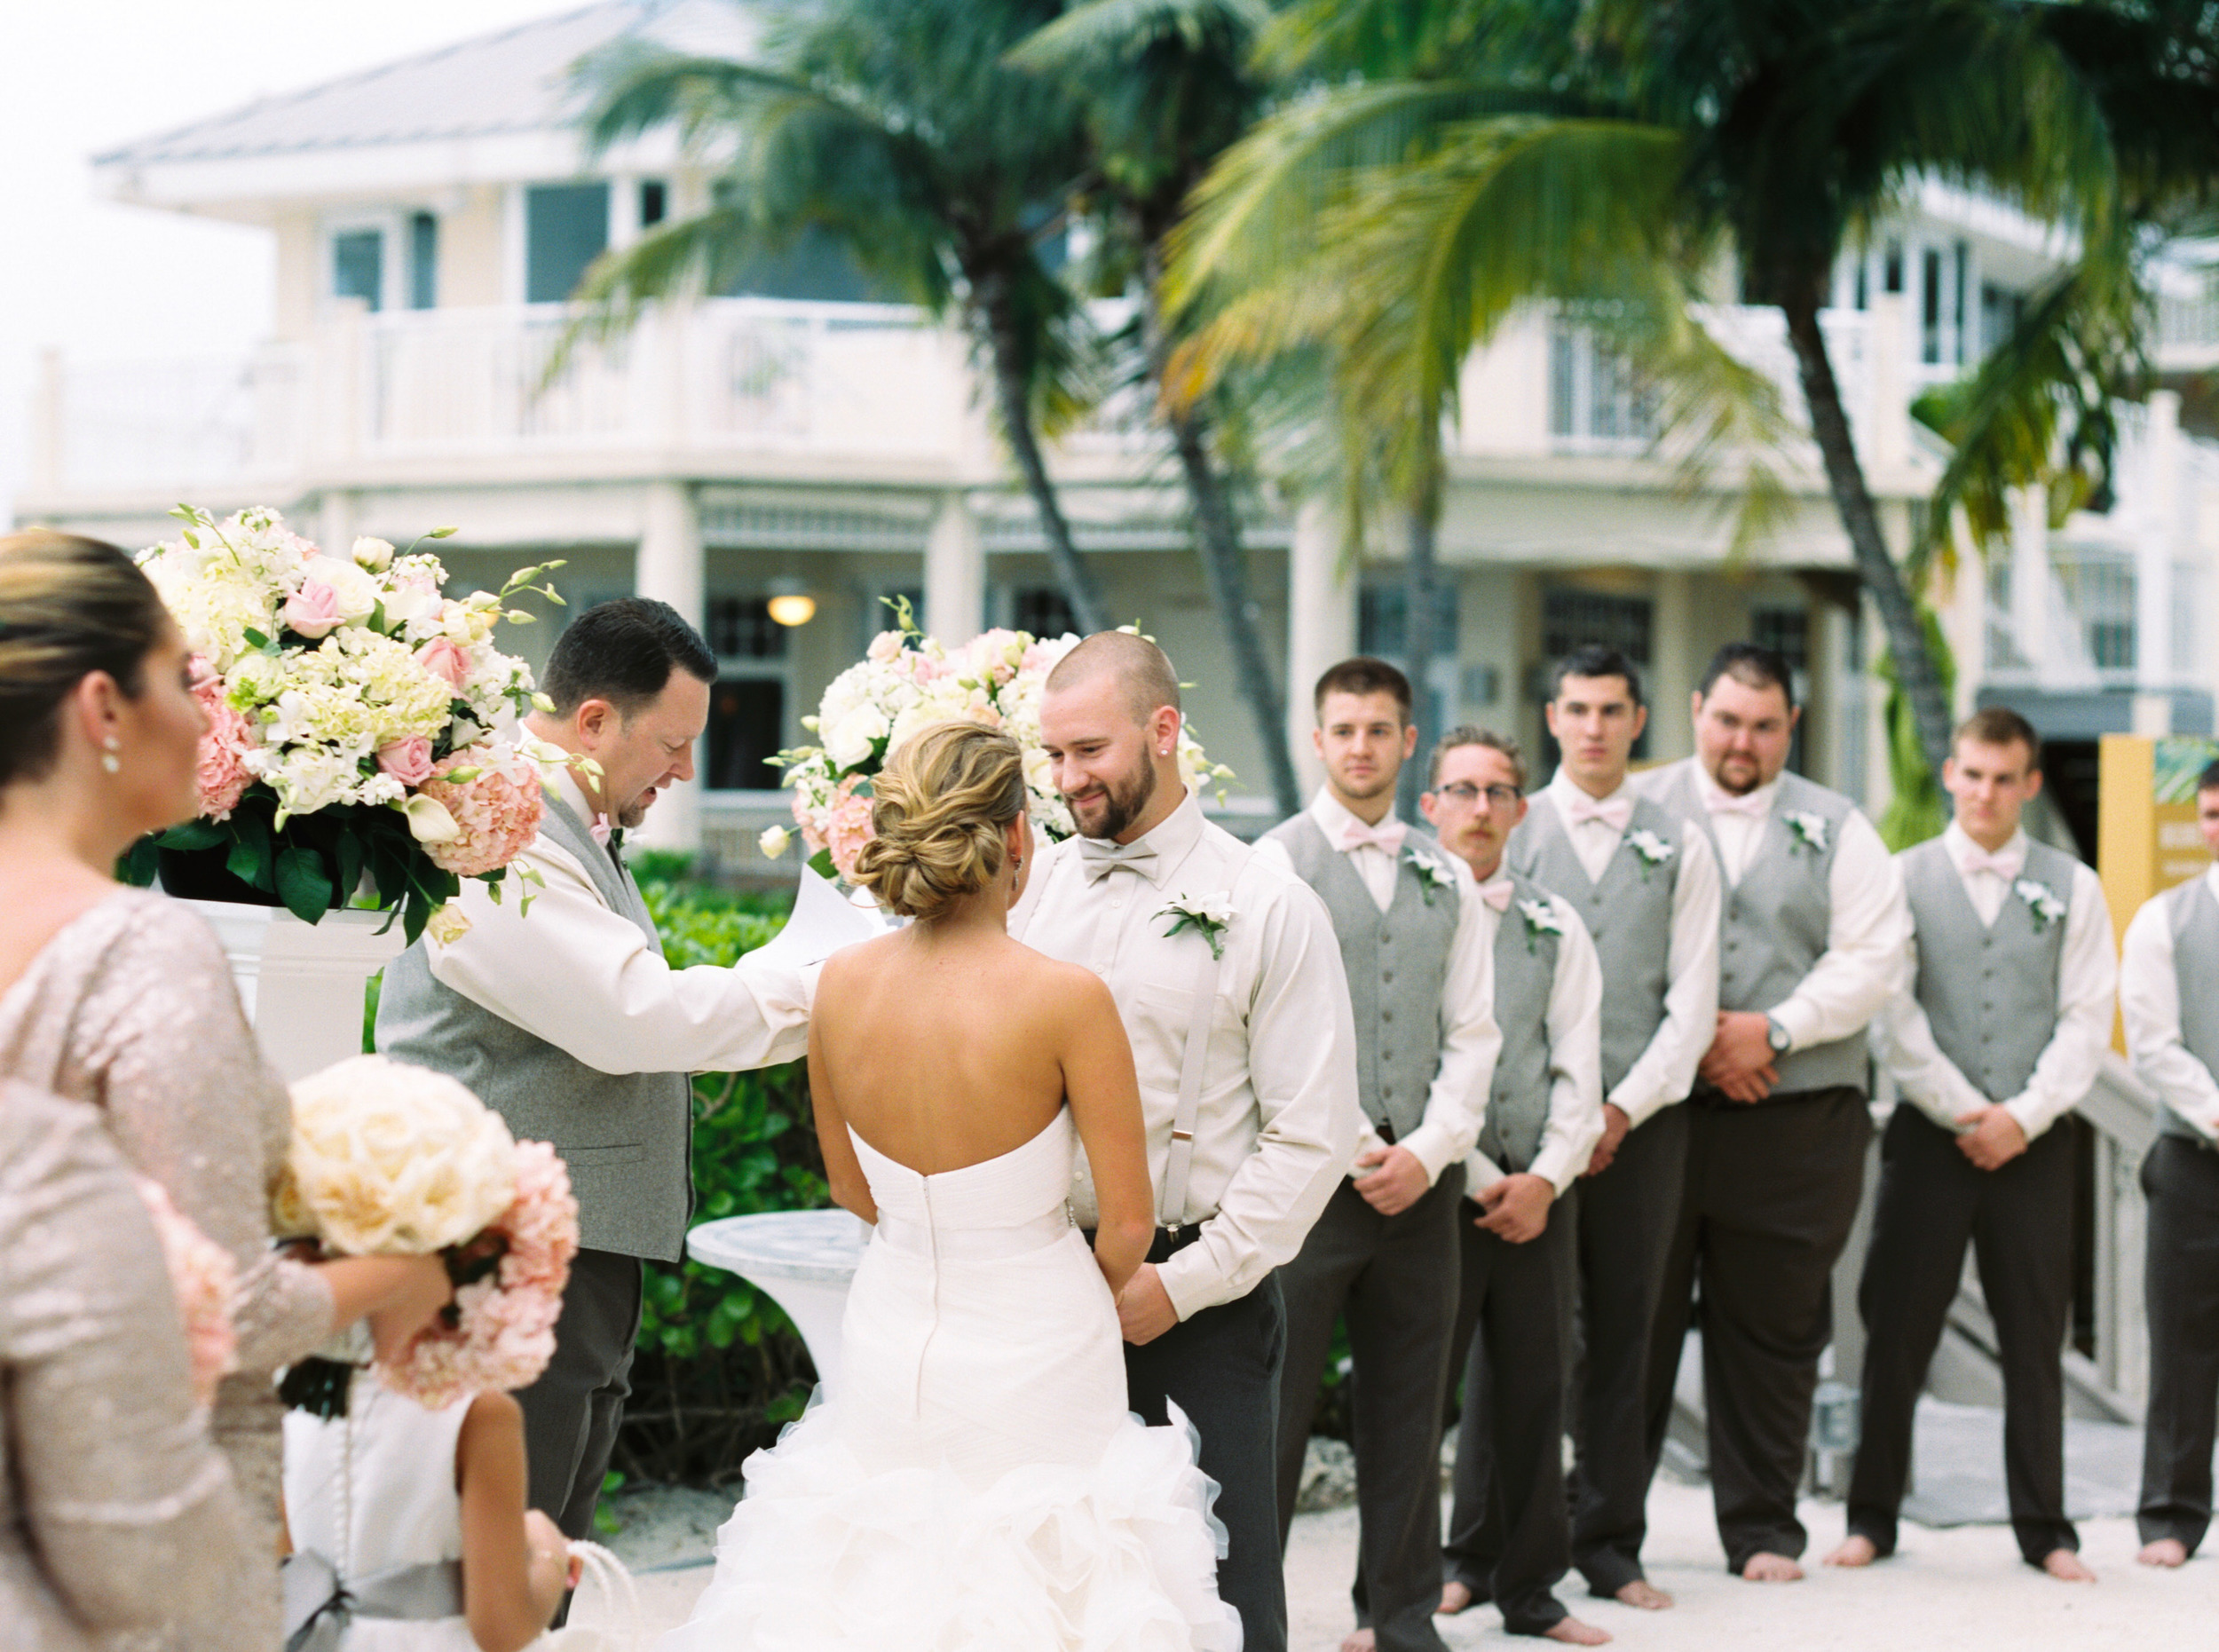 Key West Florida Wedding Film Photographer Photovision Chicago Wedding Photographer 18.jpg